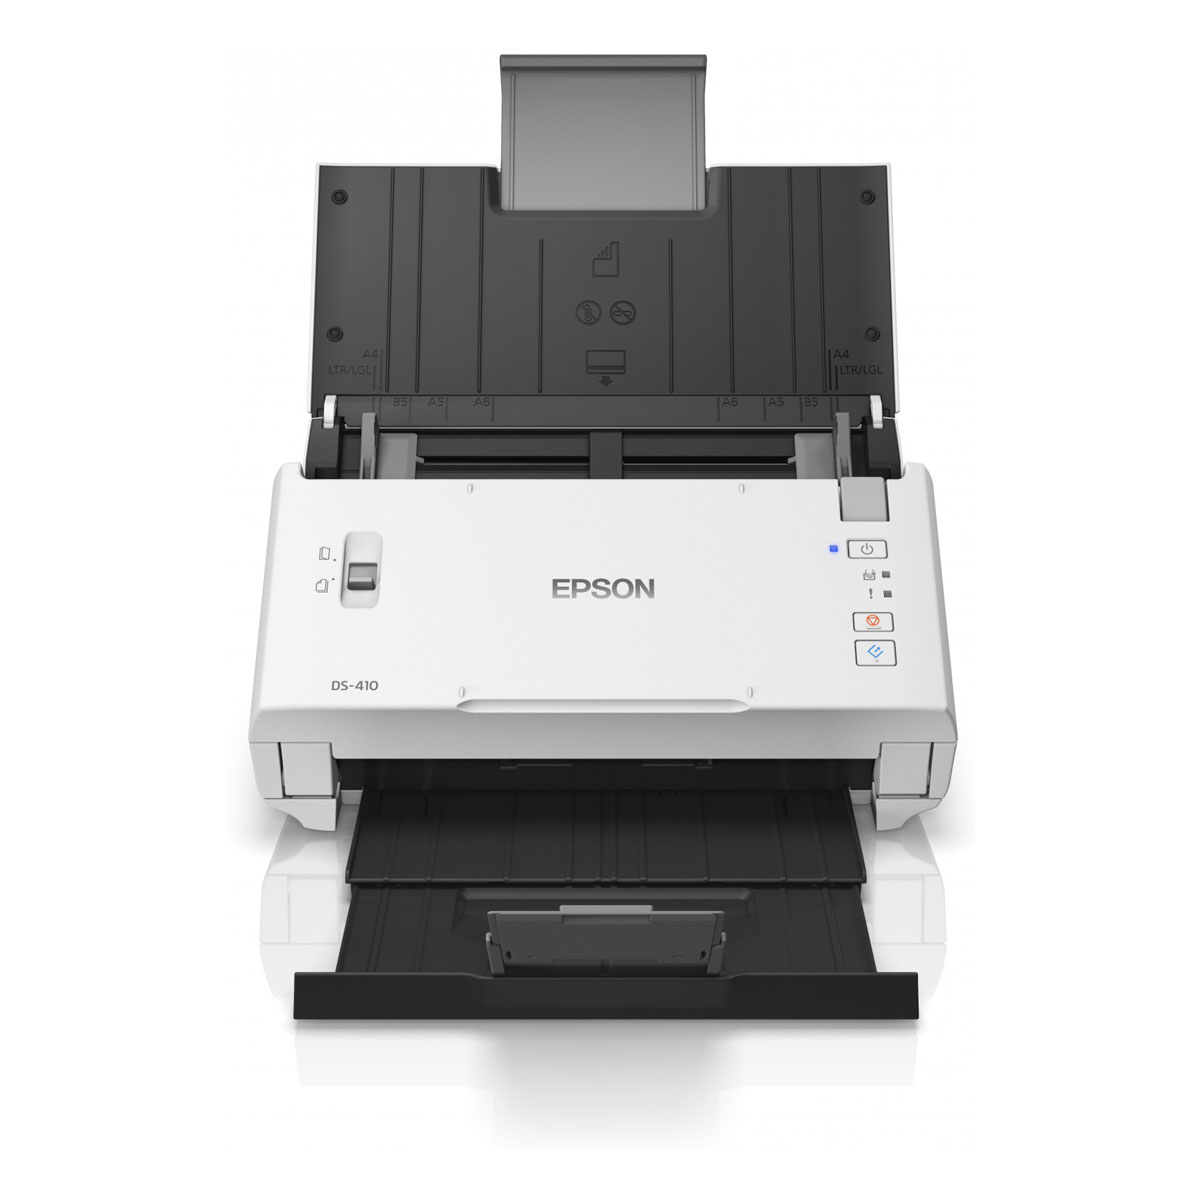 Scanner Epson WorkForce DS-410 (B11B249401) - Achat / Vente Scanner sur Picata.fr - 3